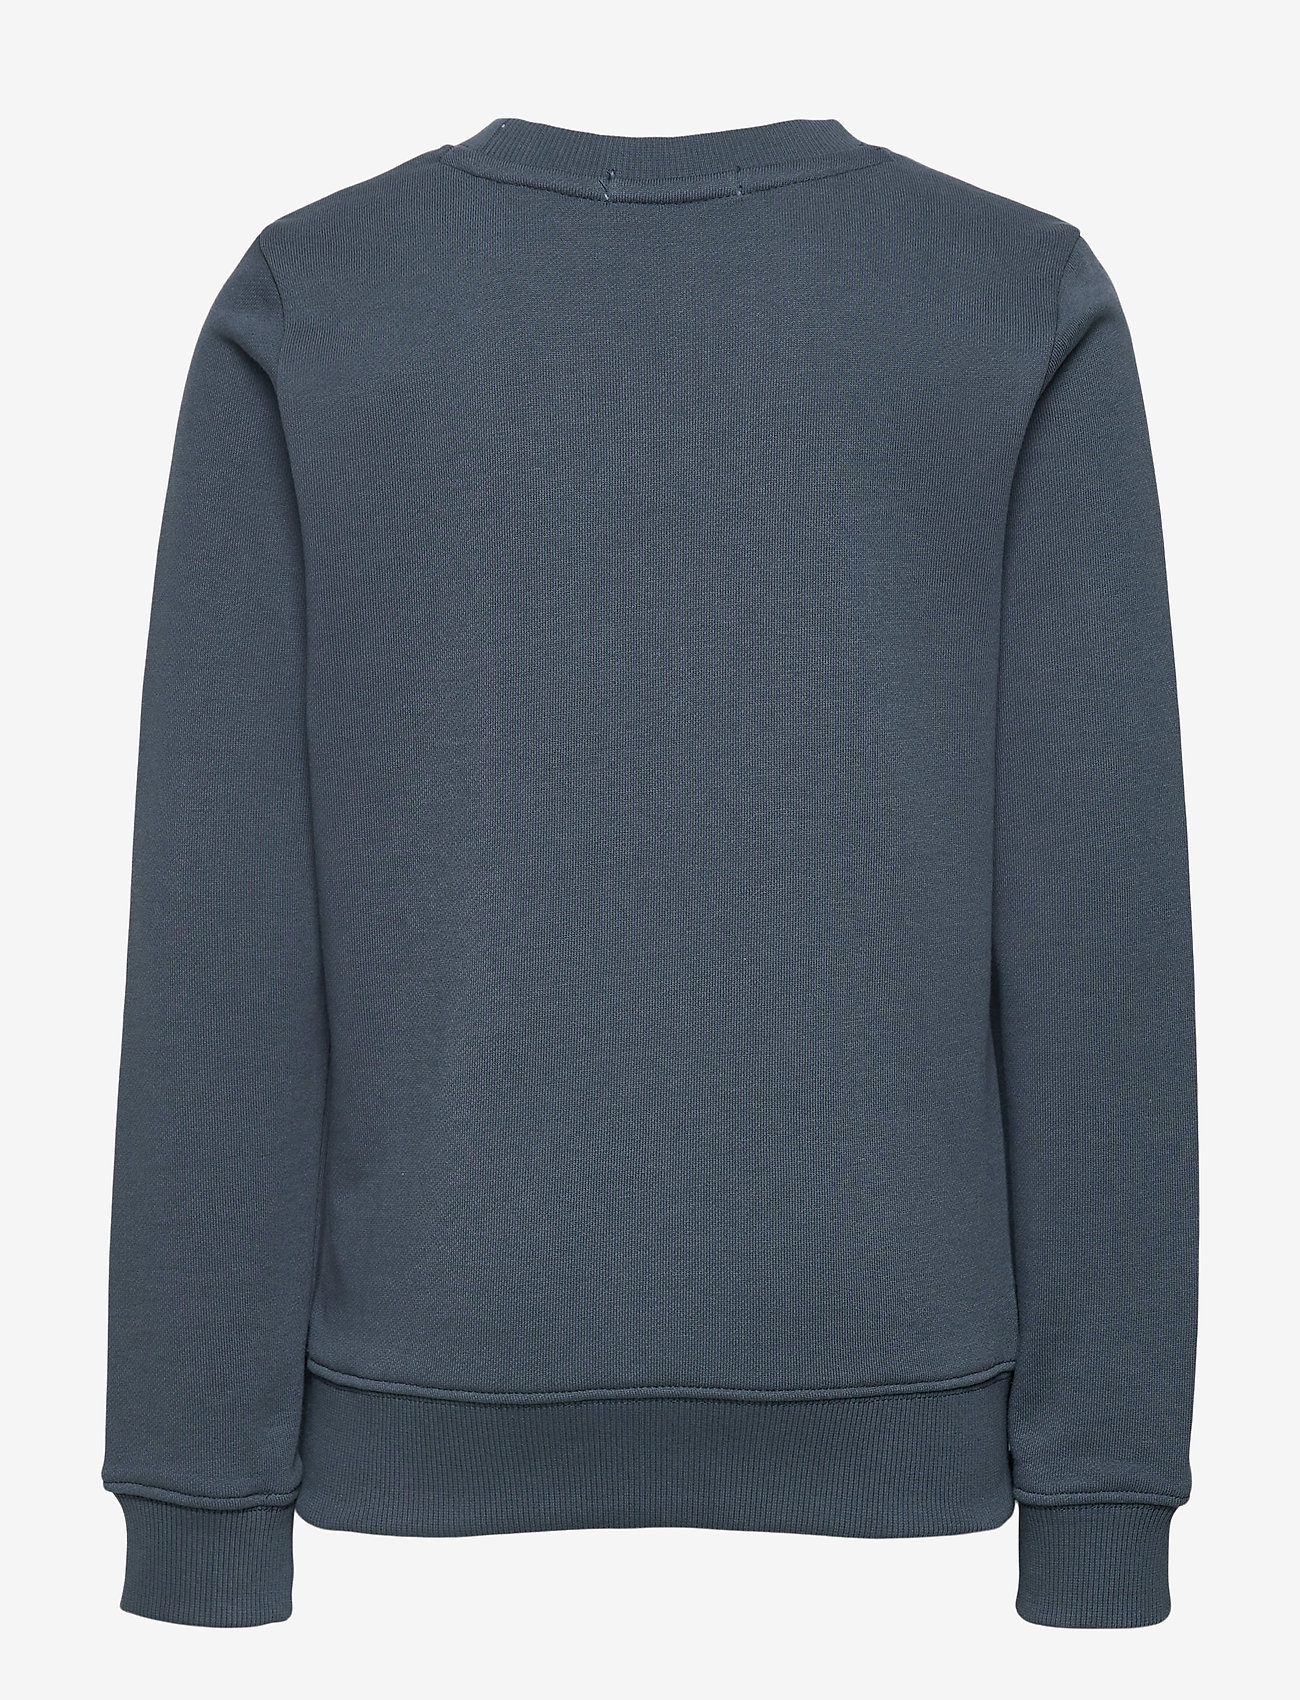 Calvin Klein - LOGO CHEST BOX SWEATSHIRT - sweatshirts - orion blue - 1